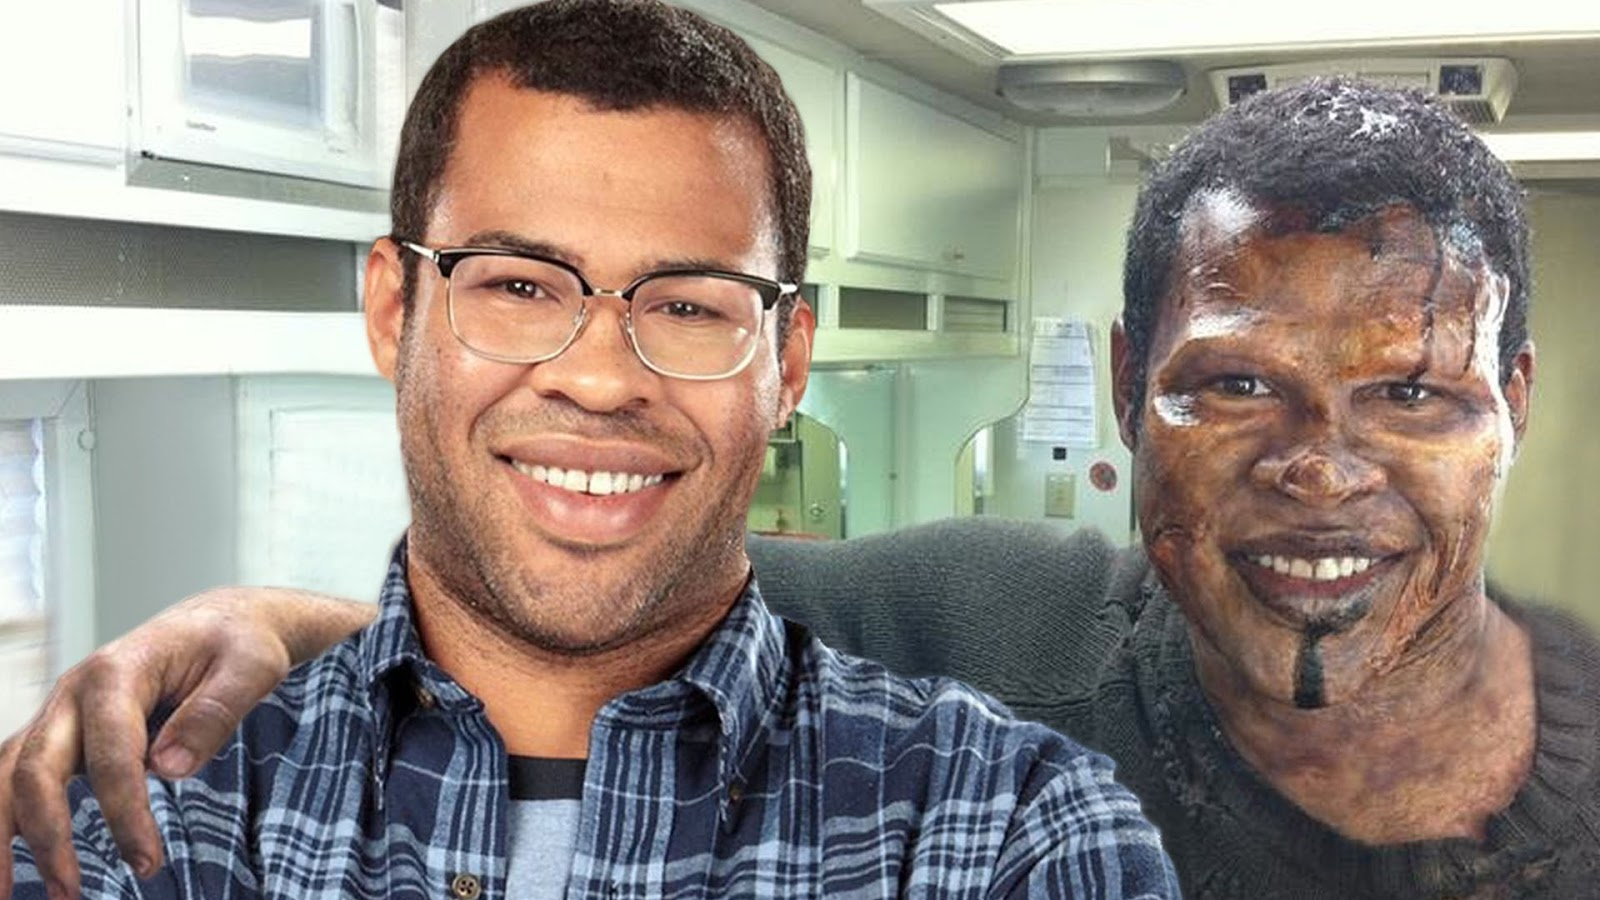 Jordan Peele Becomes First Black Director To Break $100M On Feature Debut With 'Get Out'